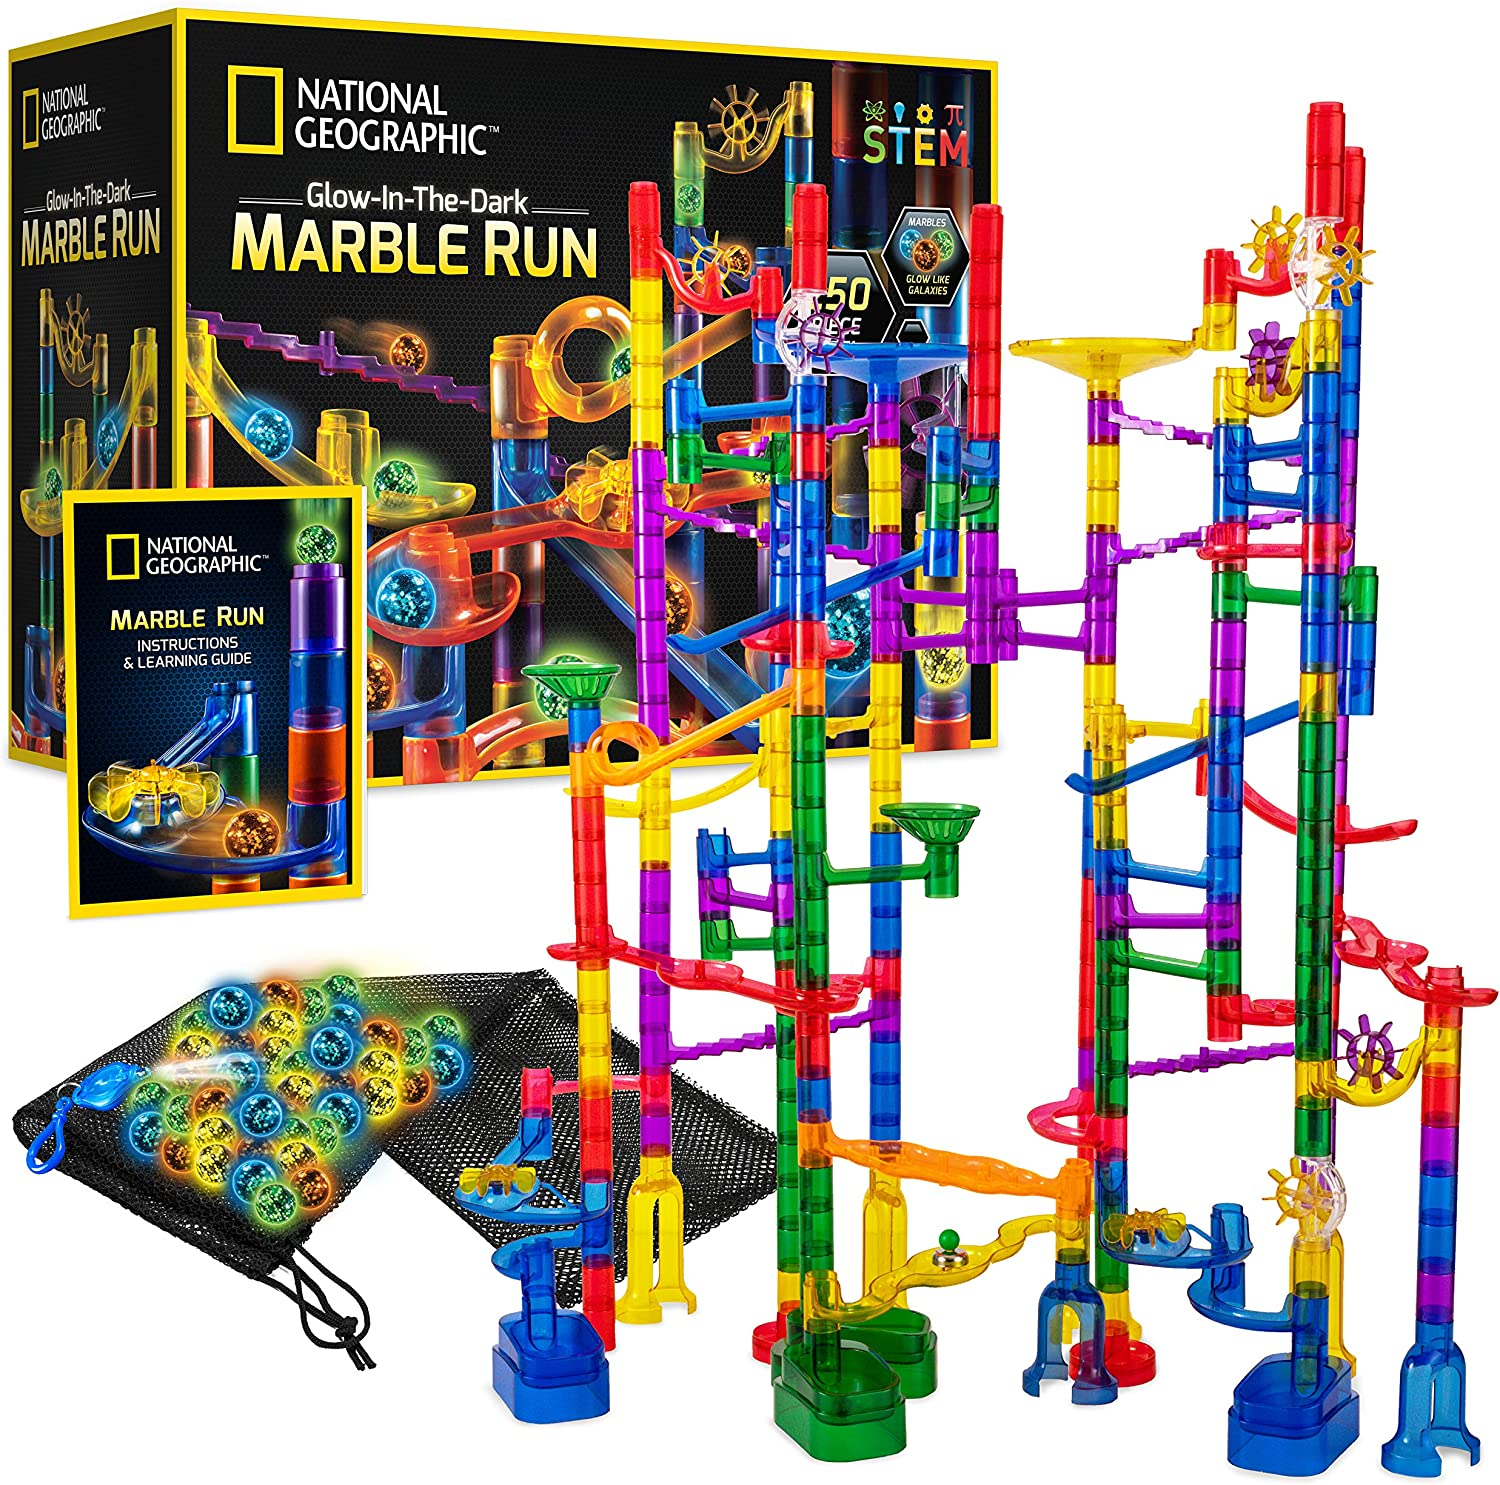 Amazon Com National Geographic Glowing Marble Run 250 Piece Construction Set With 50 Glow In The Dark Glass Marbles Mesh Storage Bag Great Creative Stem Toy For Girls Boys Toys Games